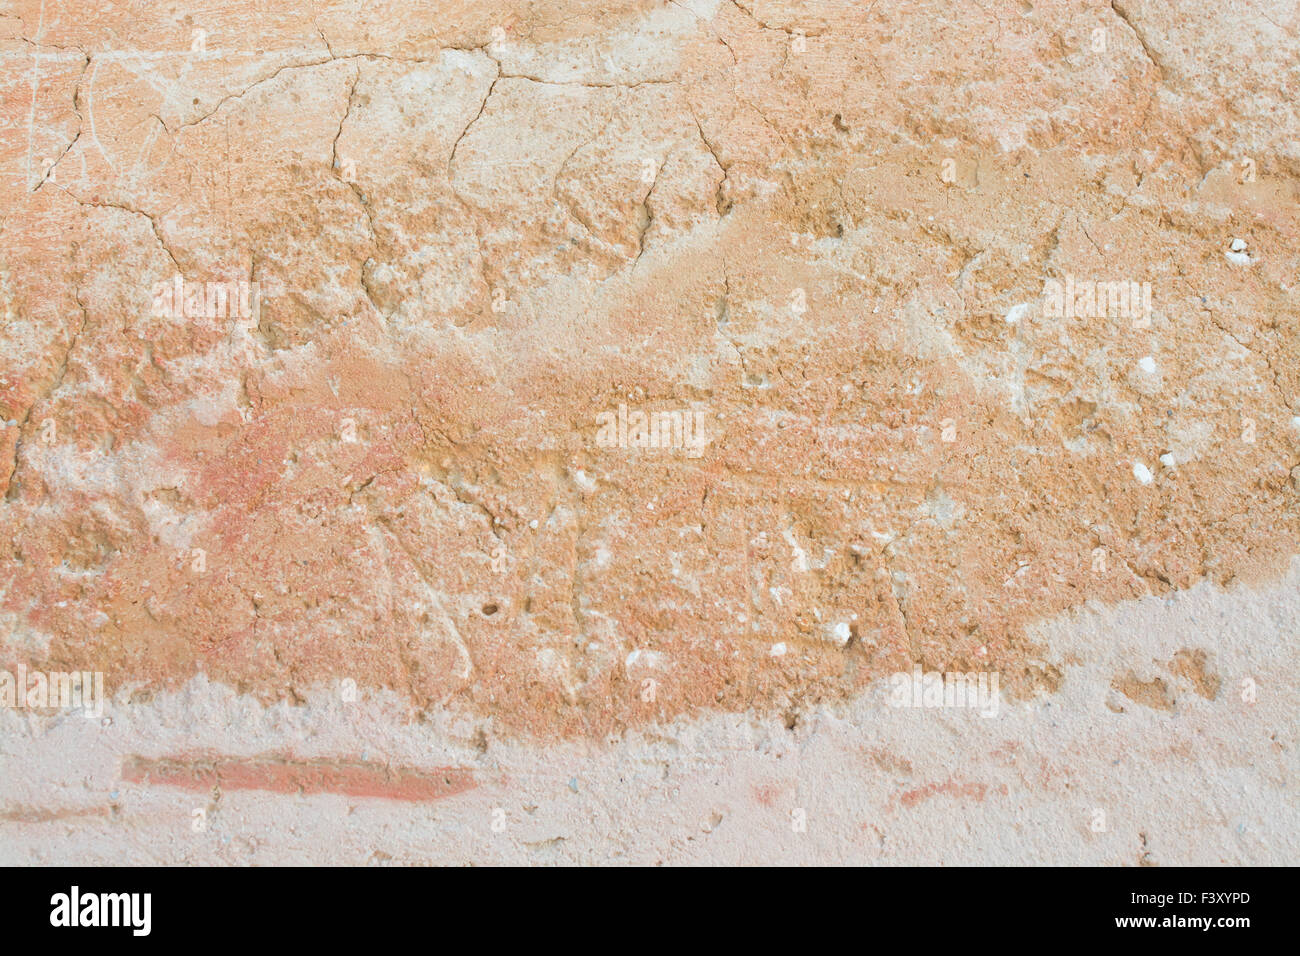 Earthy structure background in warm colors - Stock Image